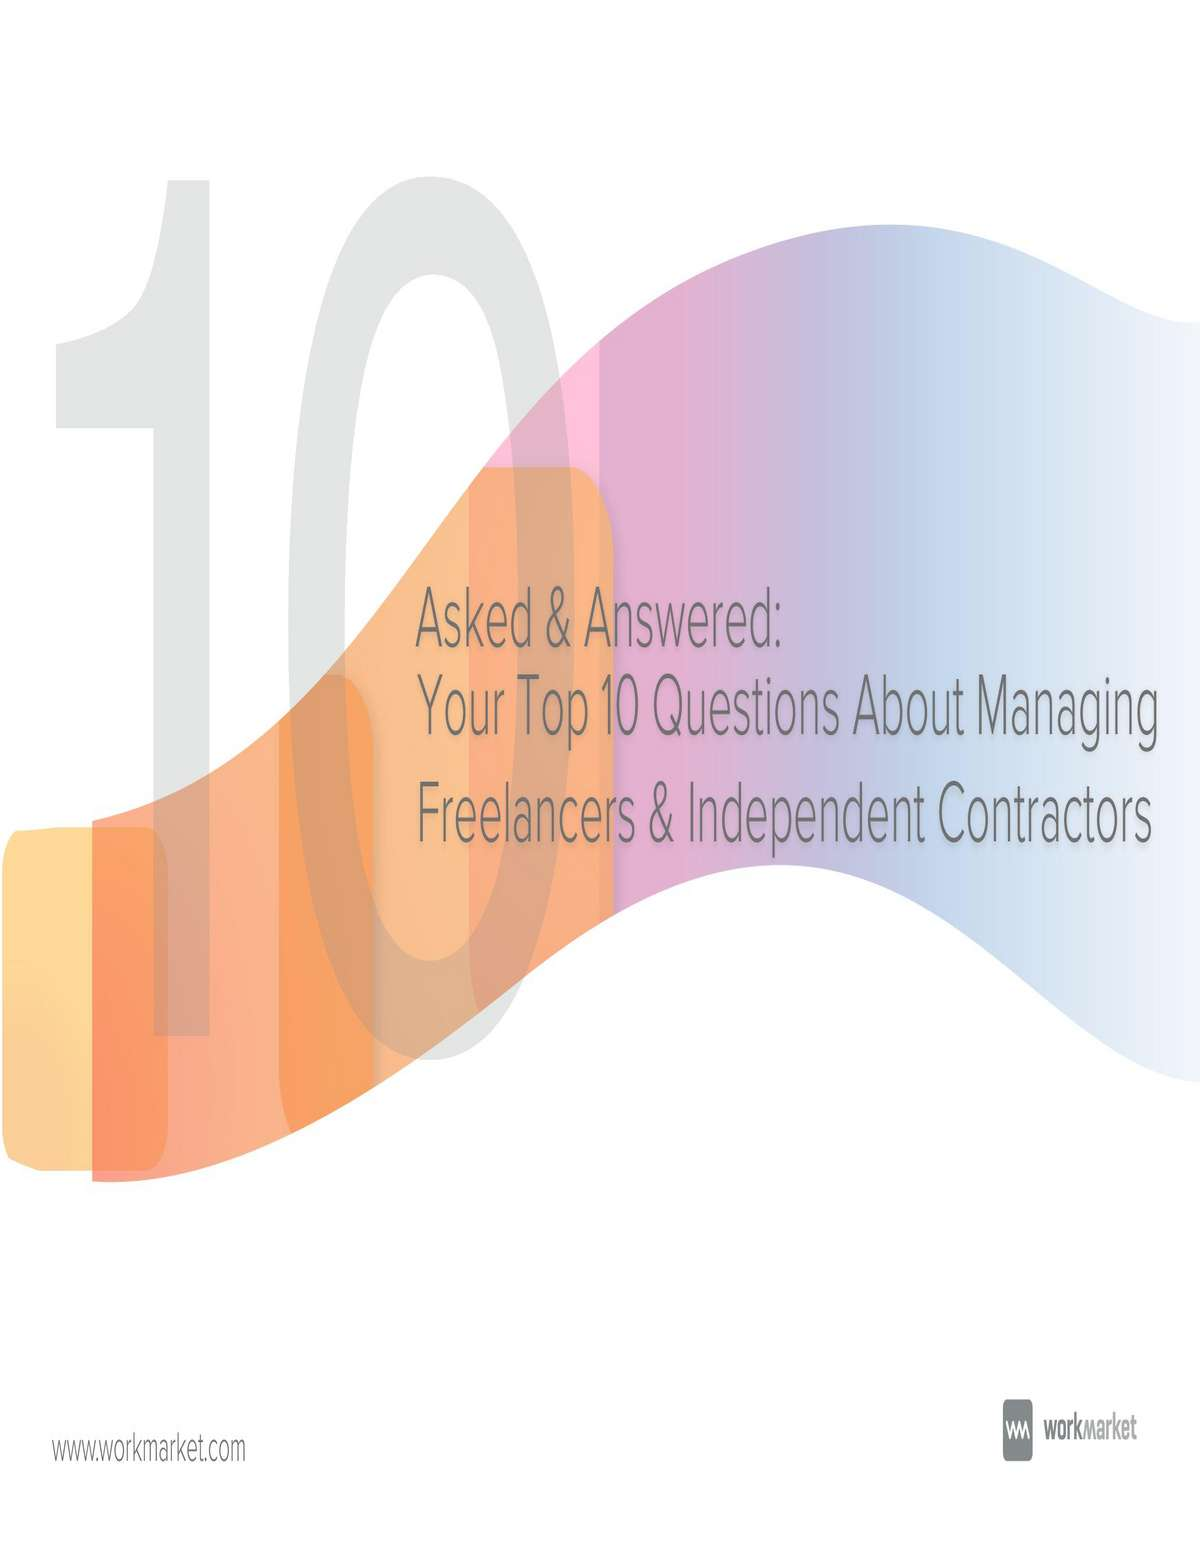 Asked & Answered: Your Top 10 Questions About Managing Freelancers & Independent Contractors